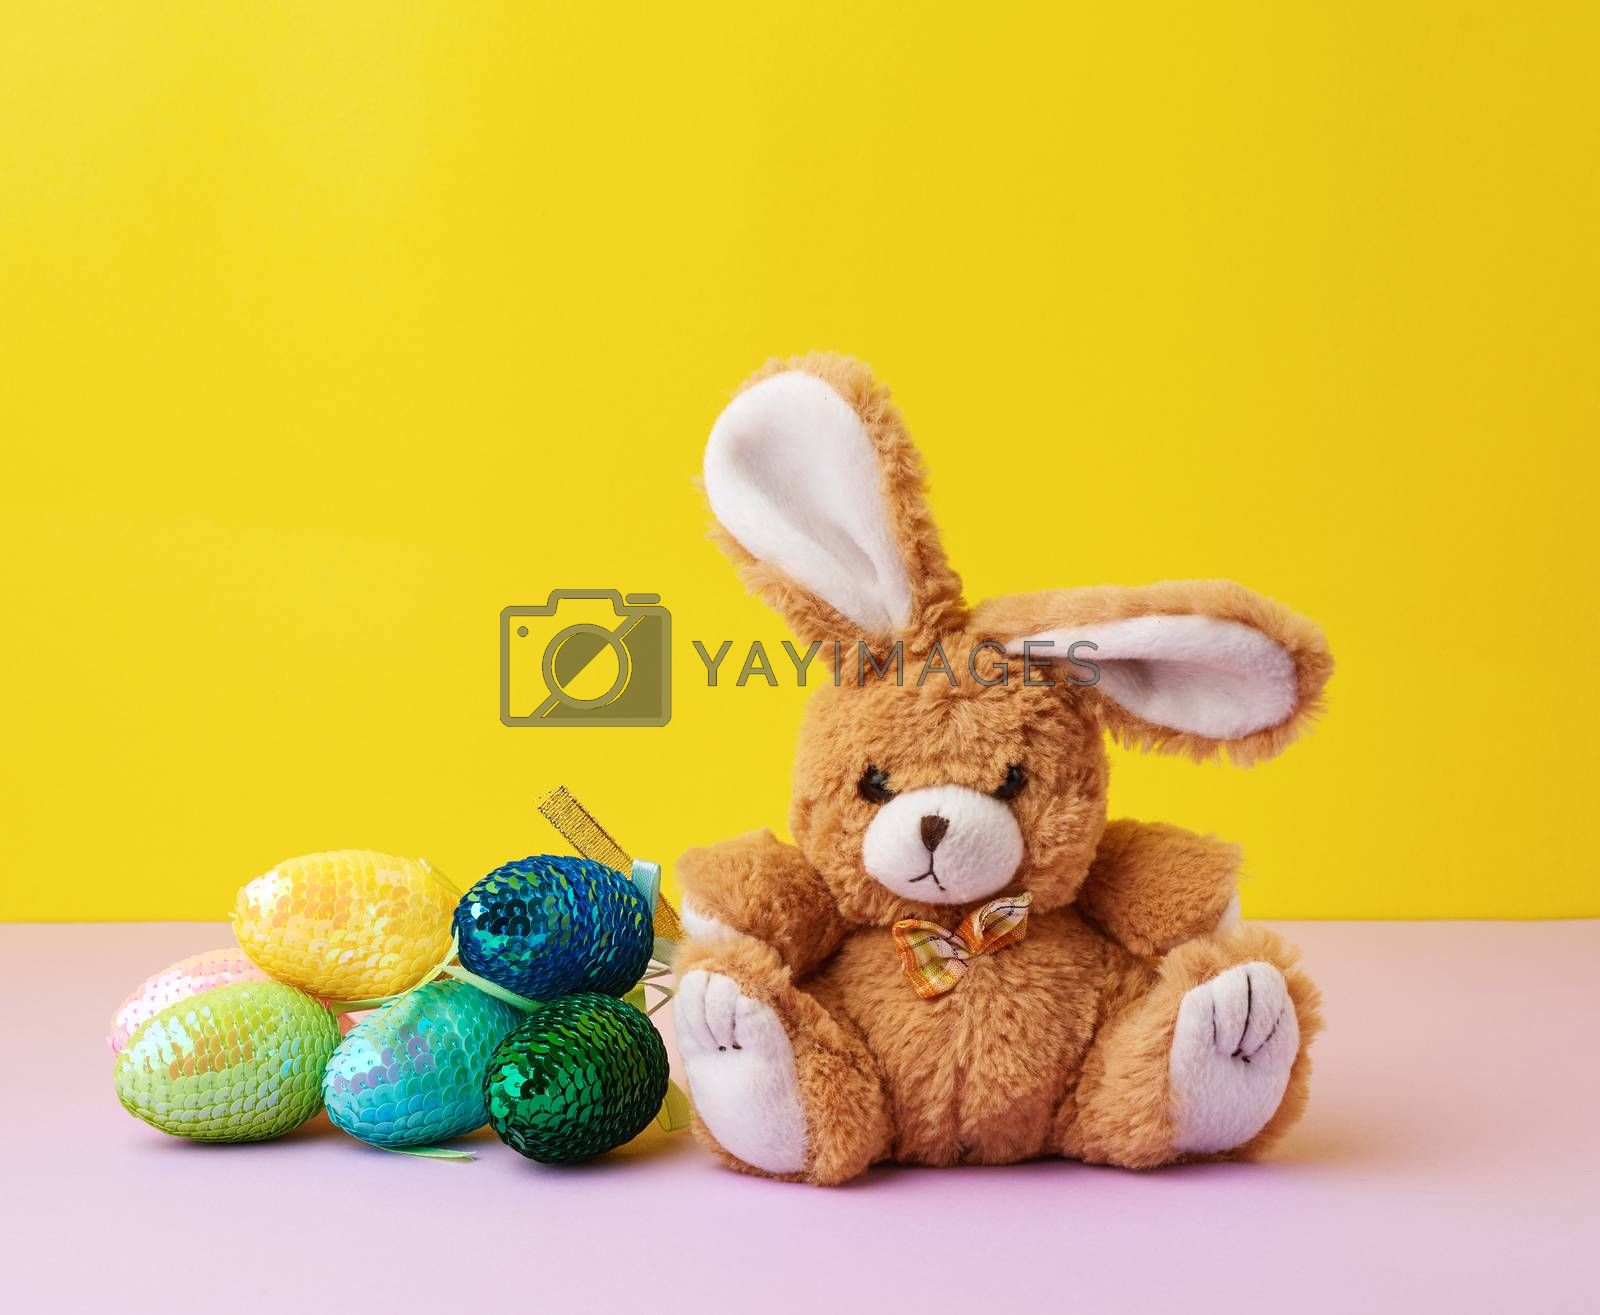 cute rabbit toy and decorative Easter eggs with sequins on a yel by ndanko